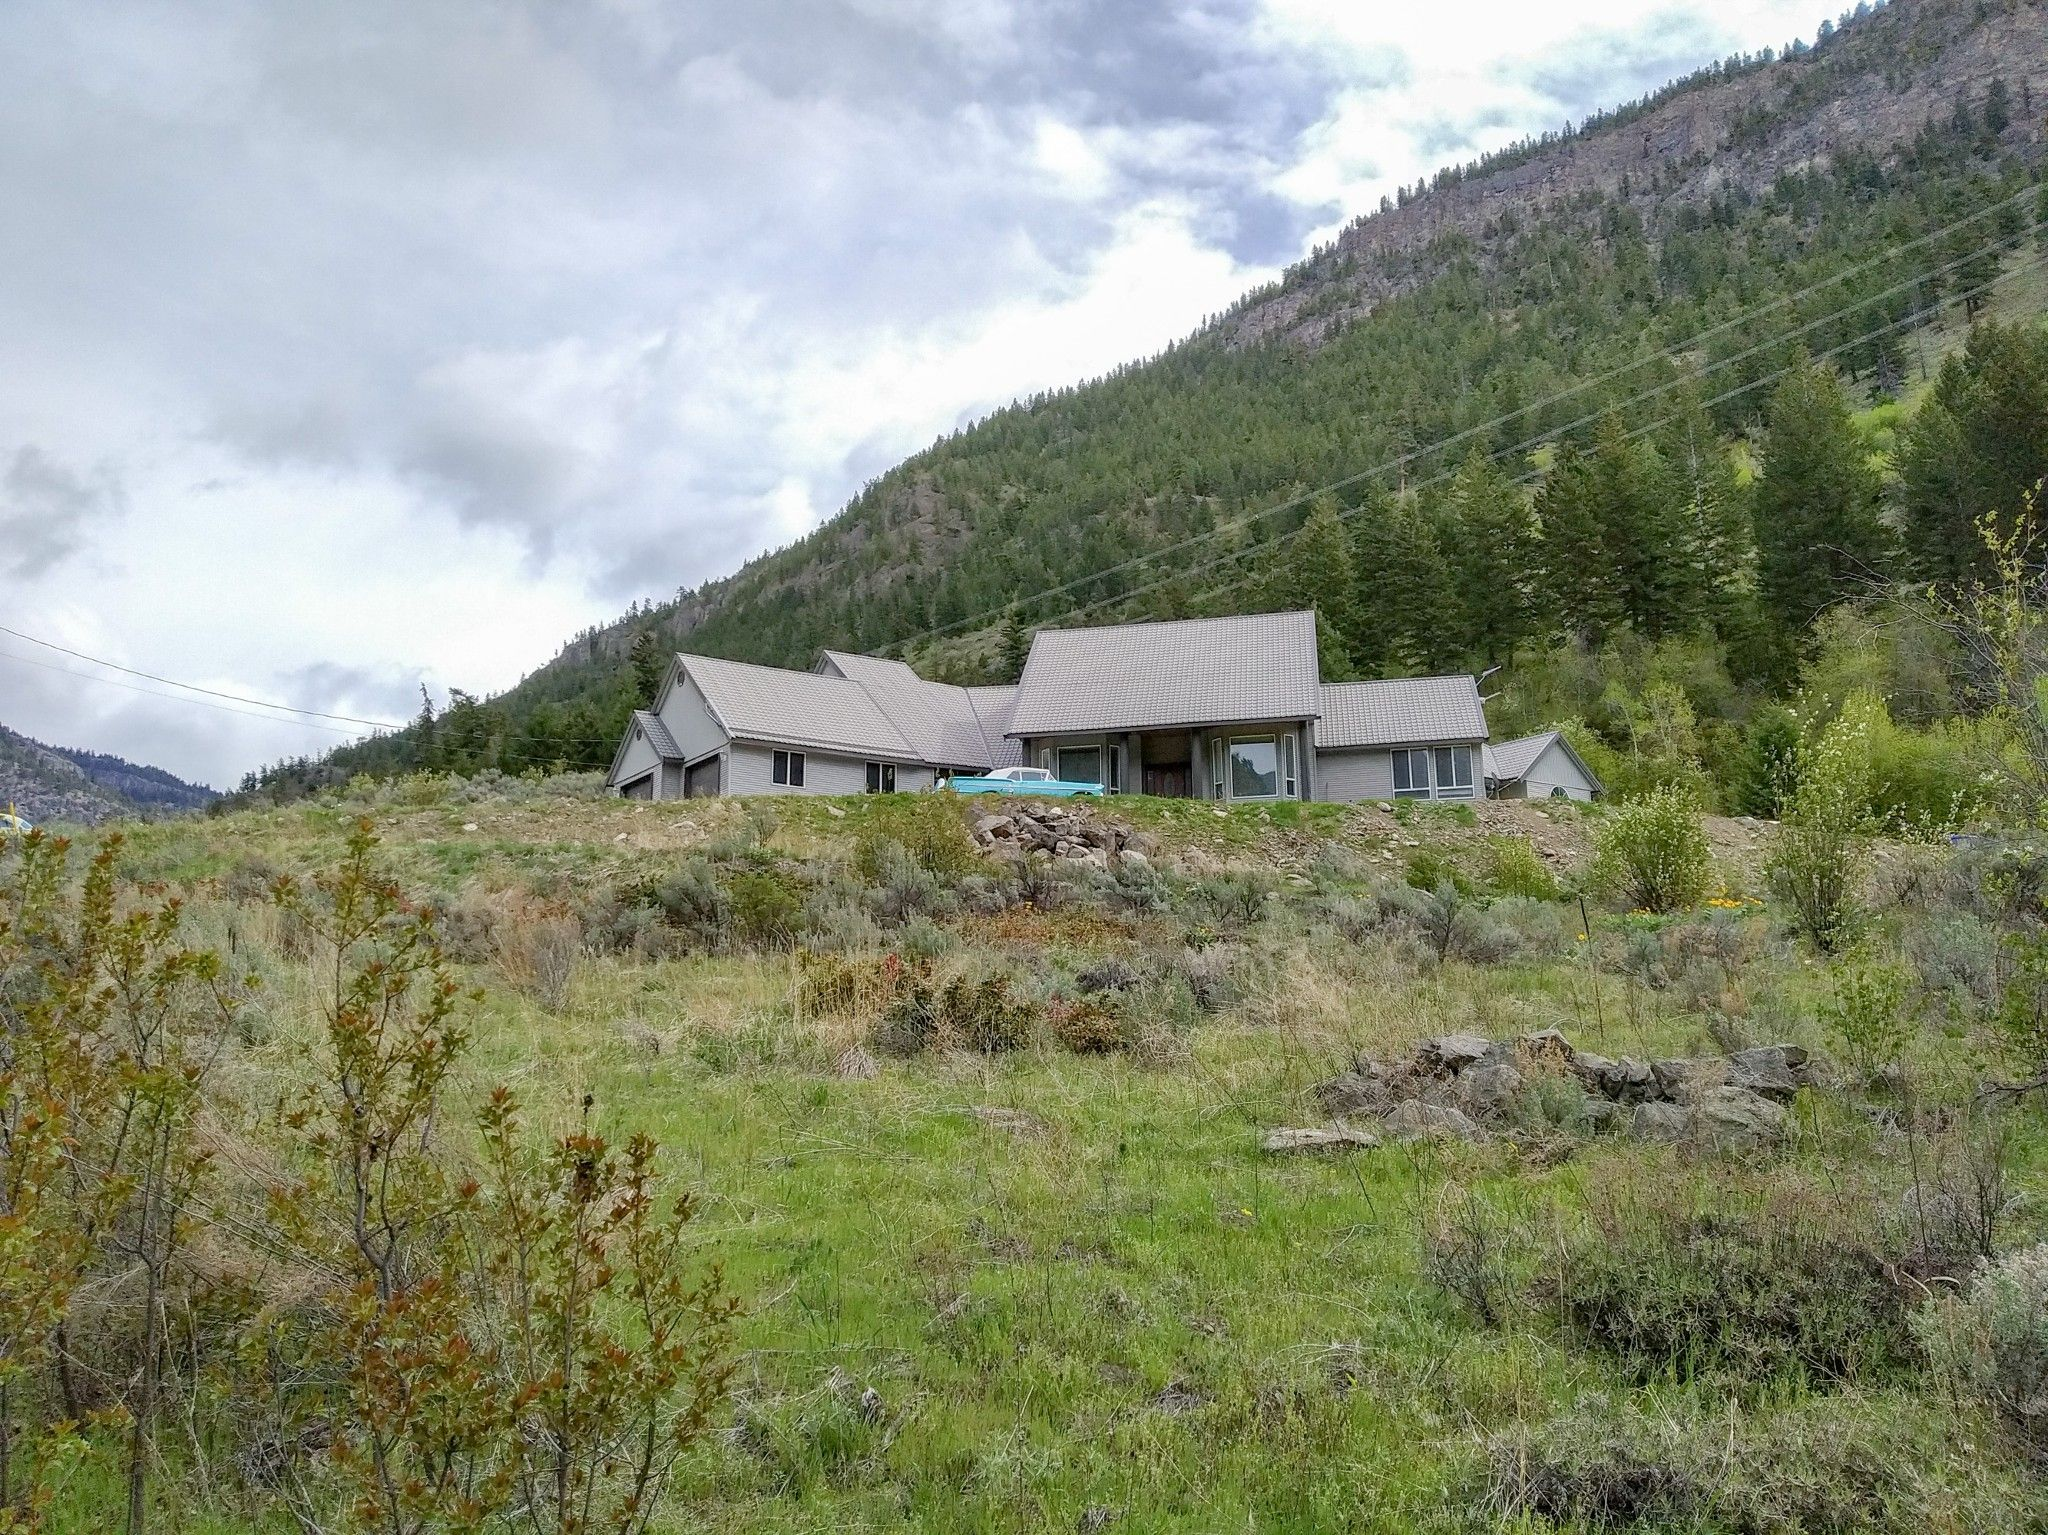 Main Photo: 1850 WHITE LAKE ROAD W in Keremeos/Olalla: Out of Town House for sale : MLS®# 184764